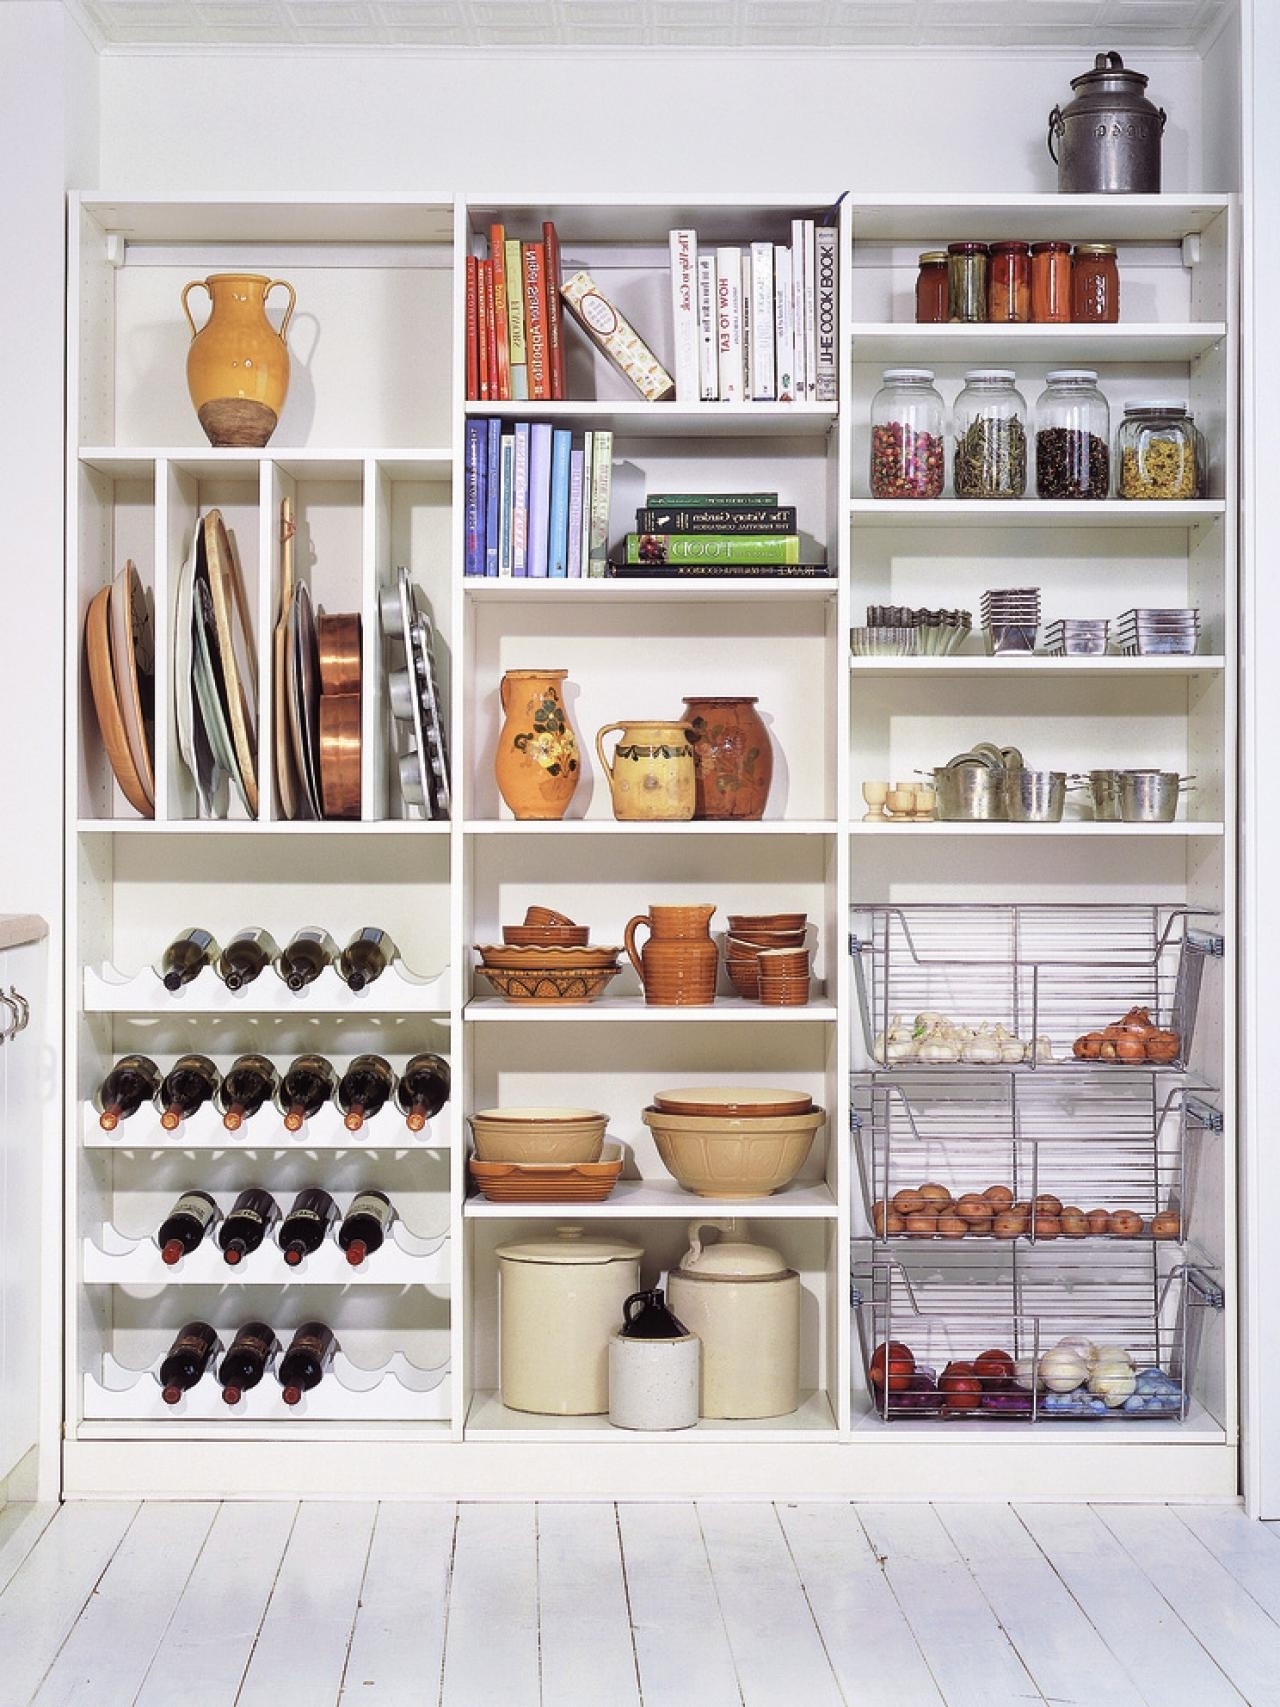 Kitchen : Pantry Shelving Small Pantry Ideas Kitchen Closet For 2017 Large Cupboard With Shelves (View 1 of 15)